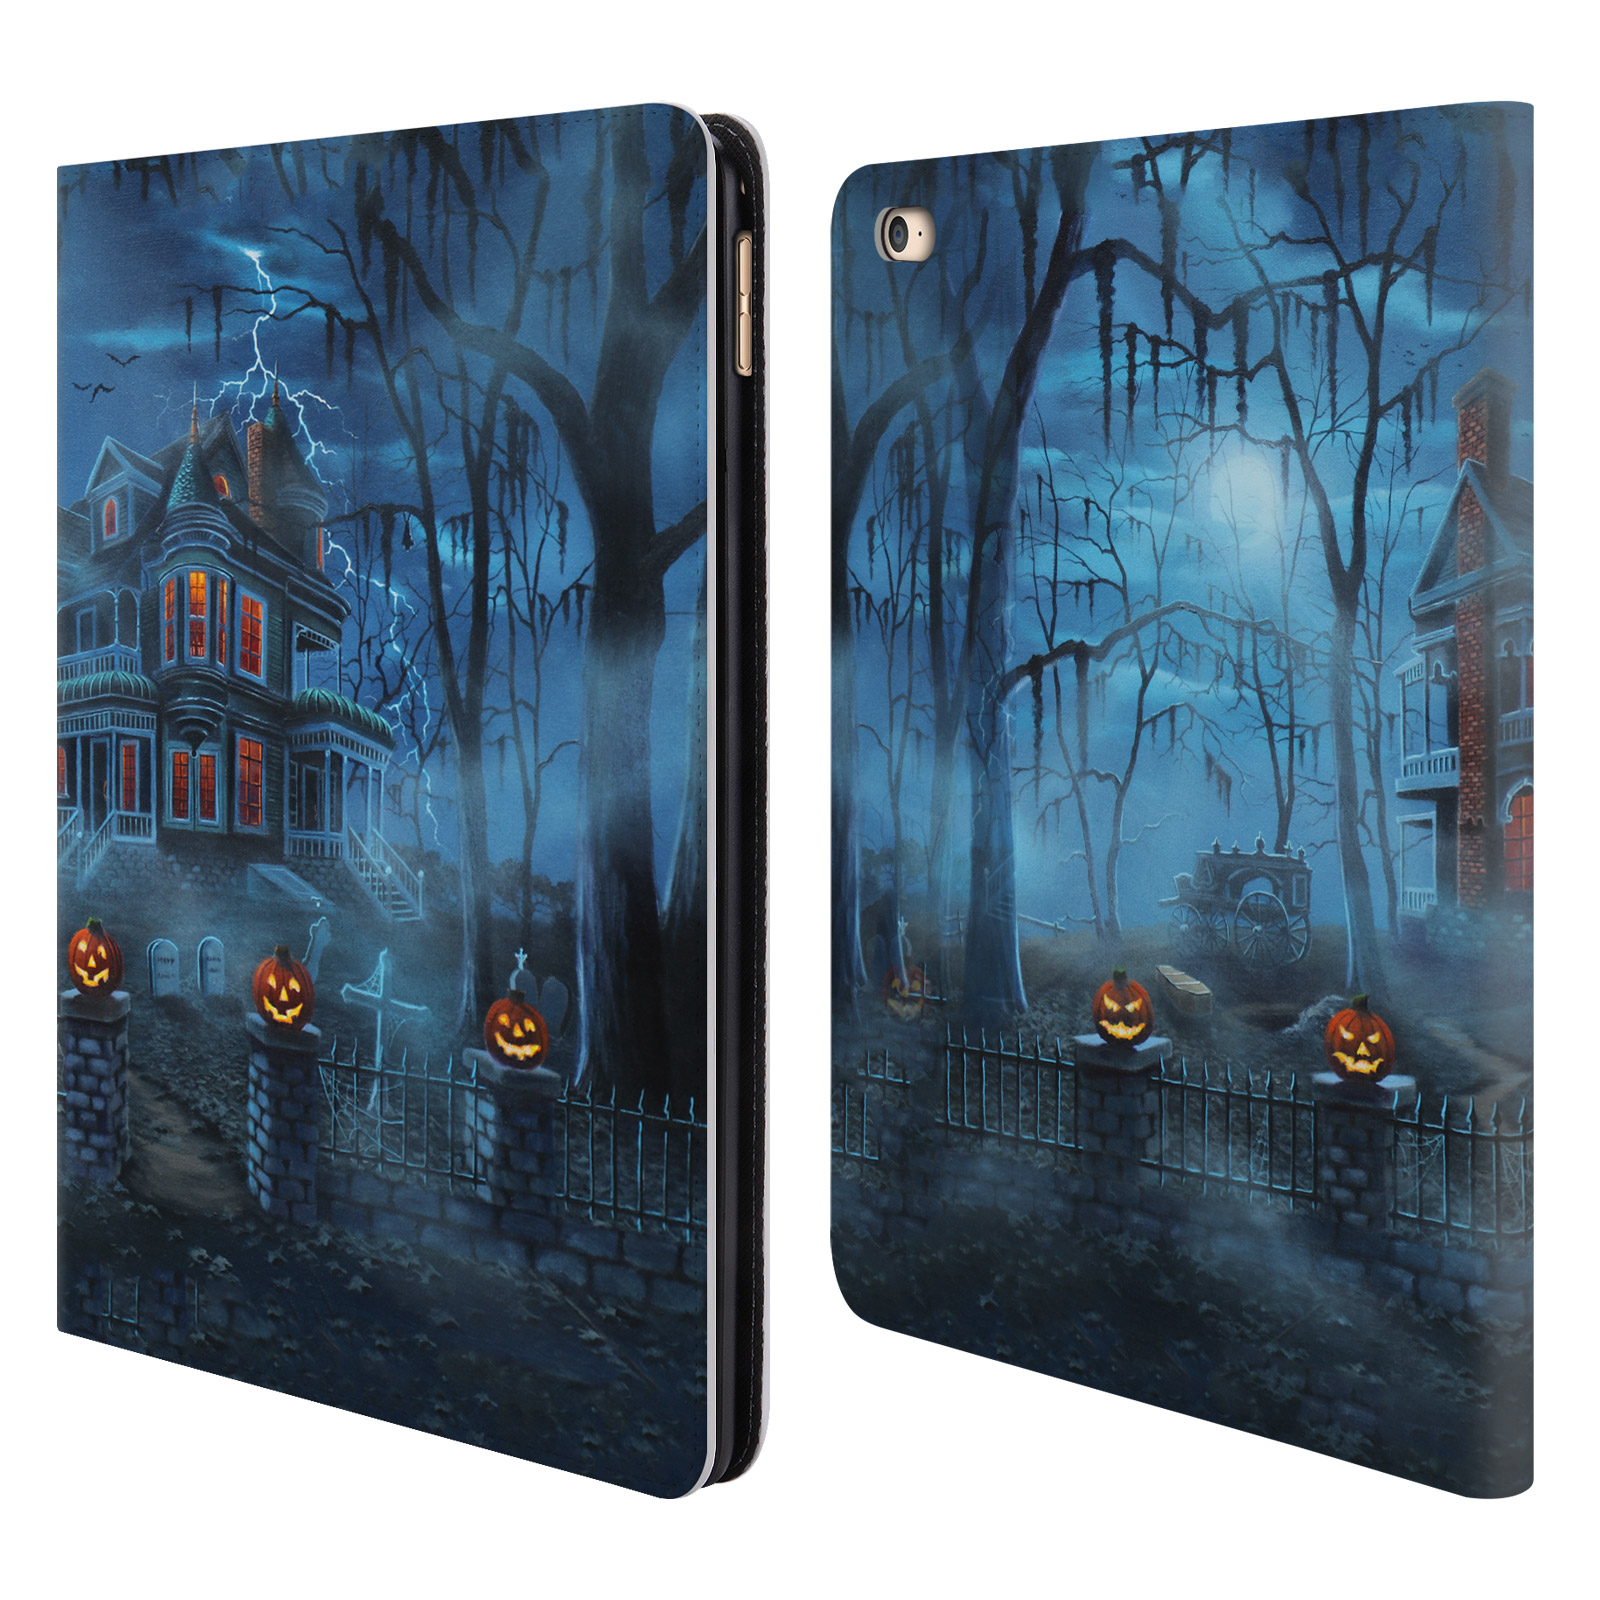 OFFICIAL-GENO-PEOPLES-ART-HALLOWEEN-LEATHER-BOOK-WALLET-CASE-FOR-APPLE-iPAD